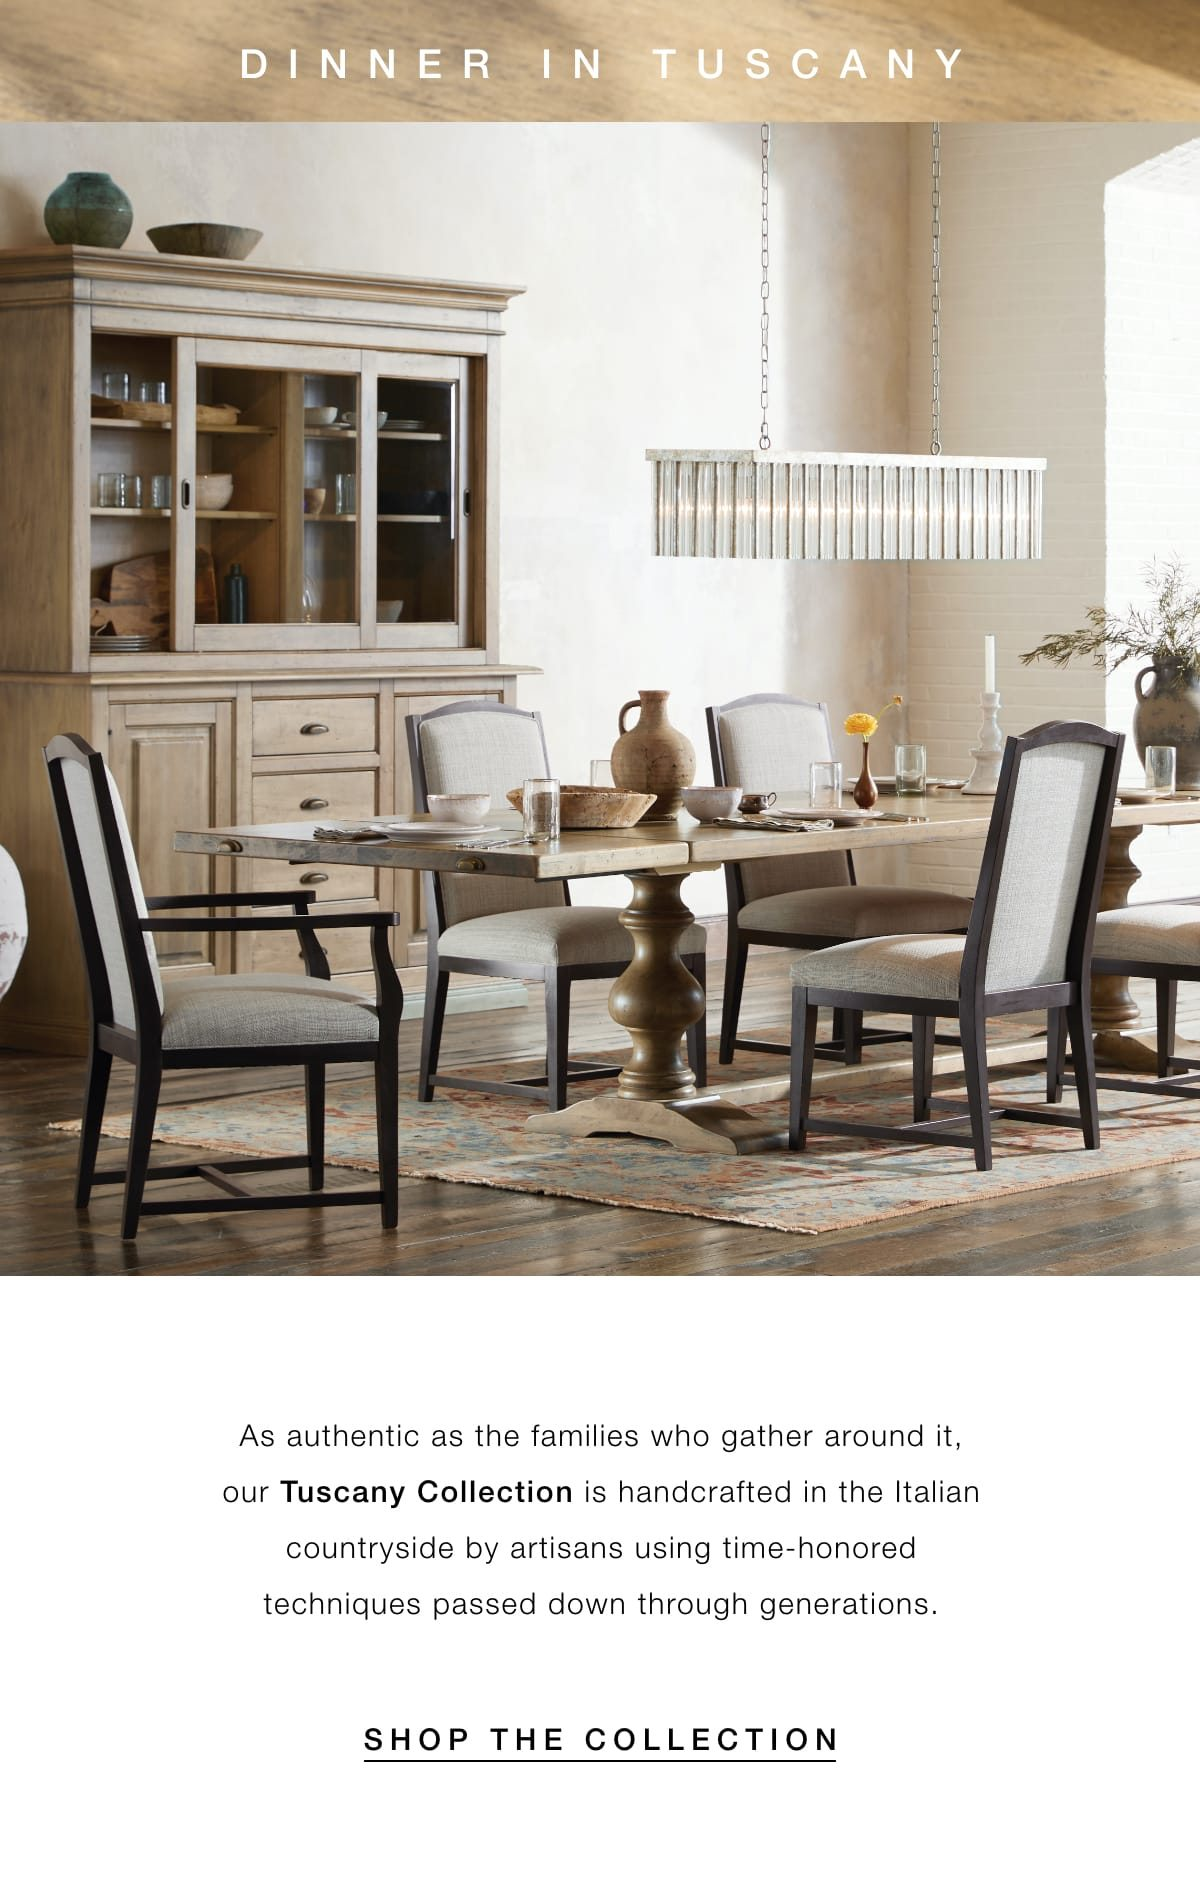 Explore the Tuscany Collection